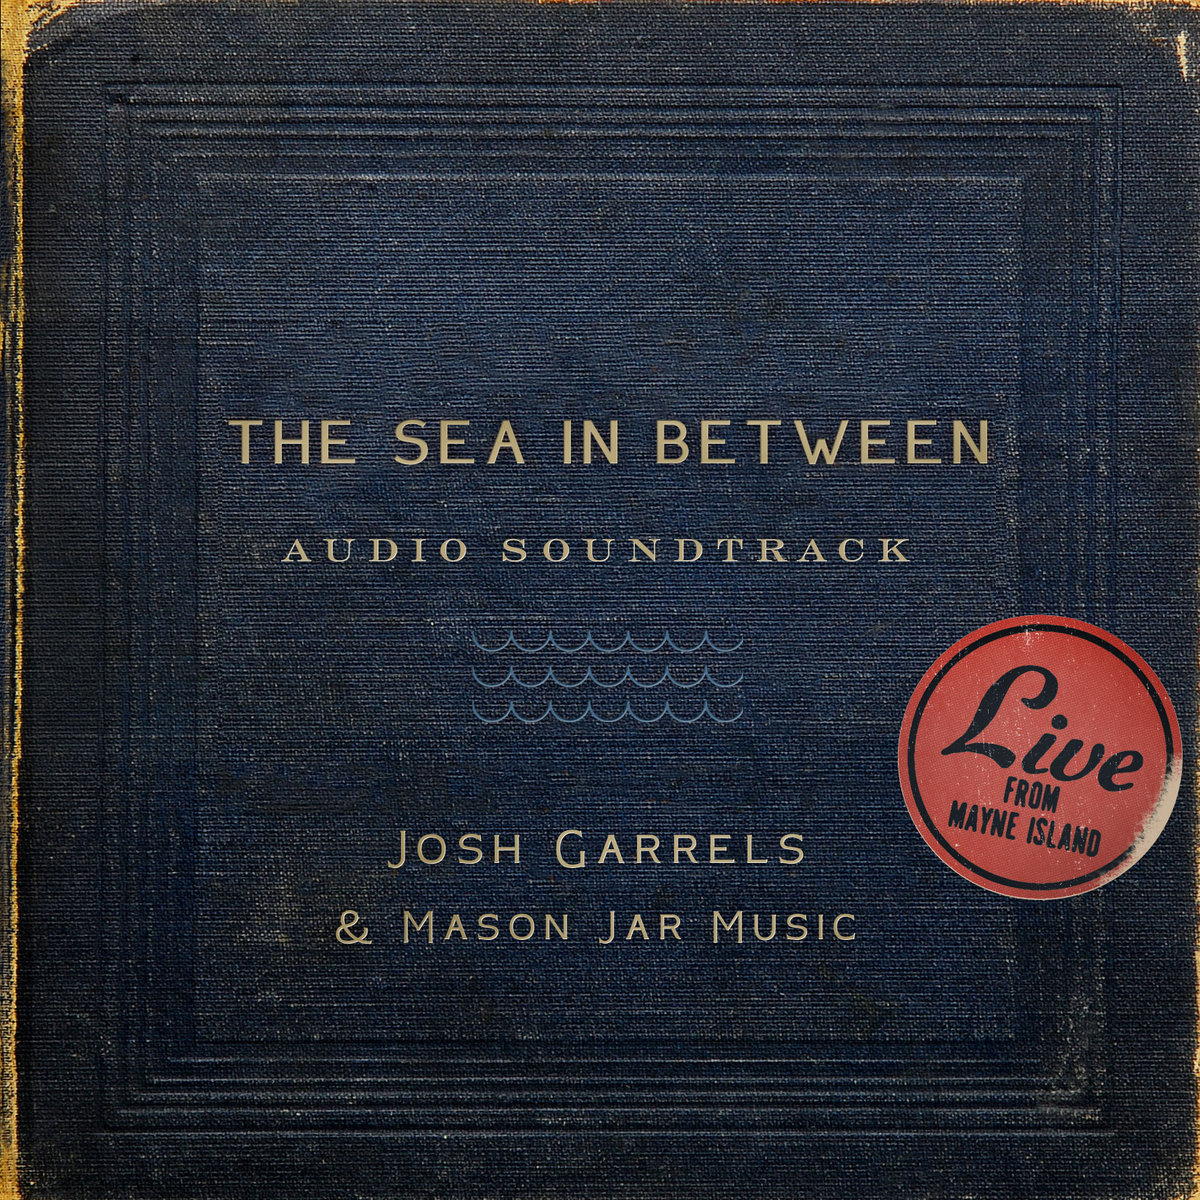 Josh Garrels & MJM - The Sea In Between Soundtrack.jpg